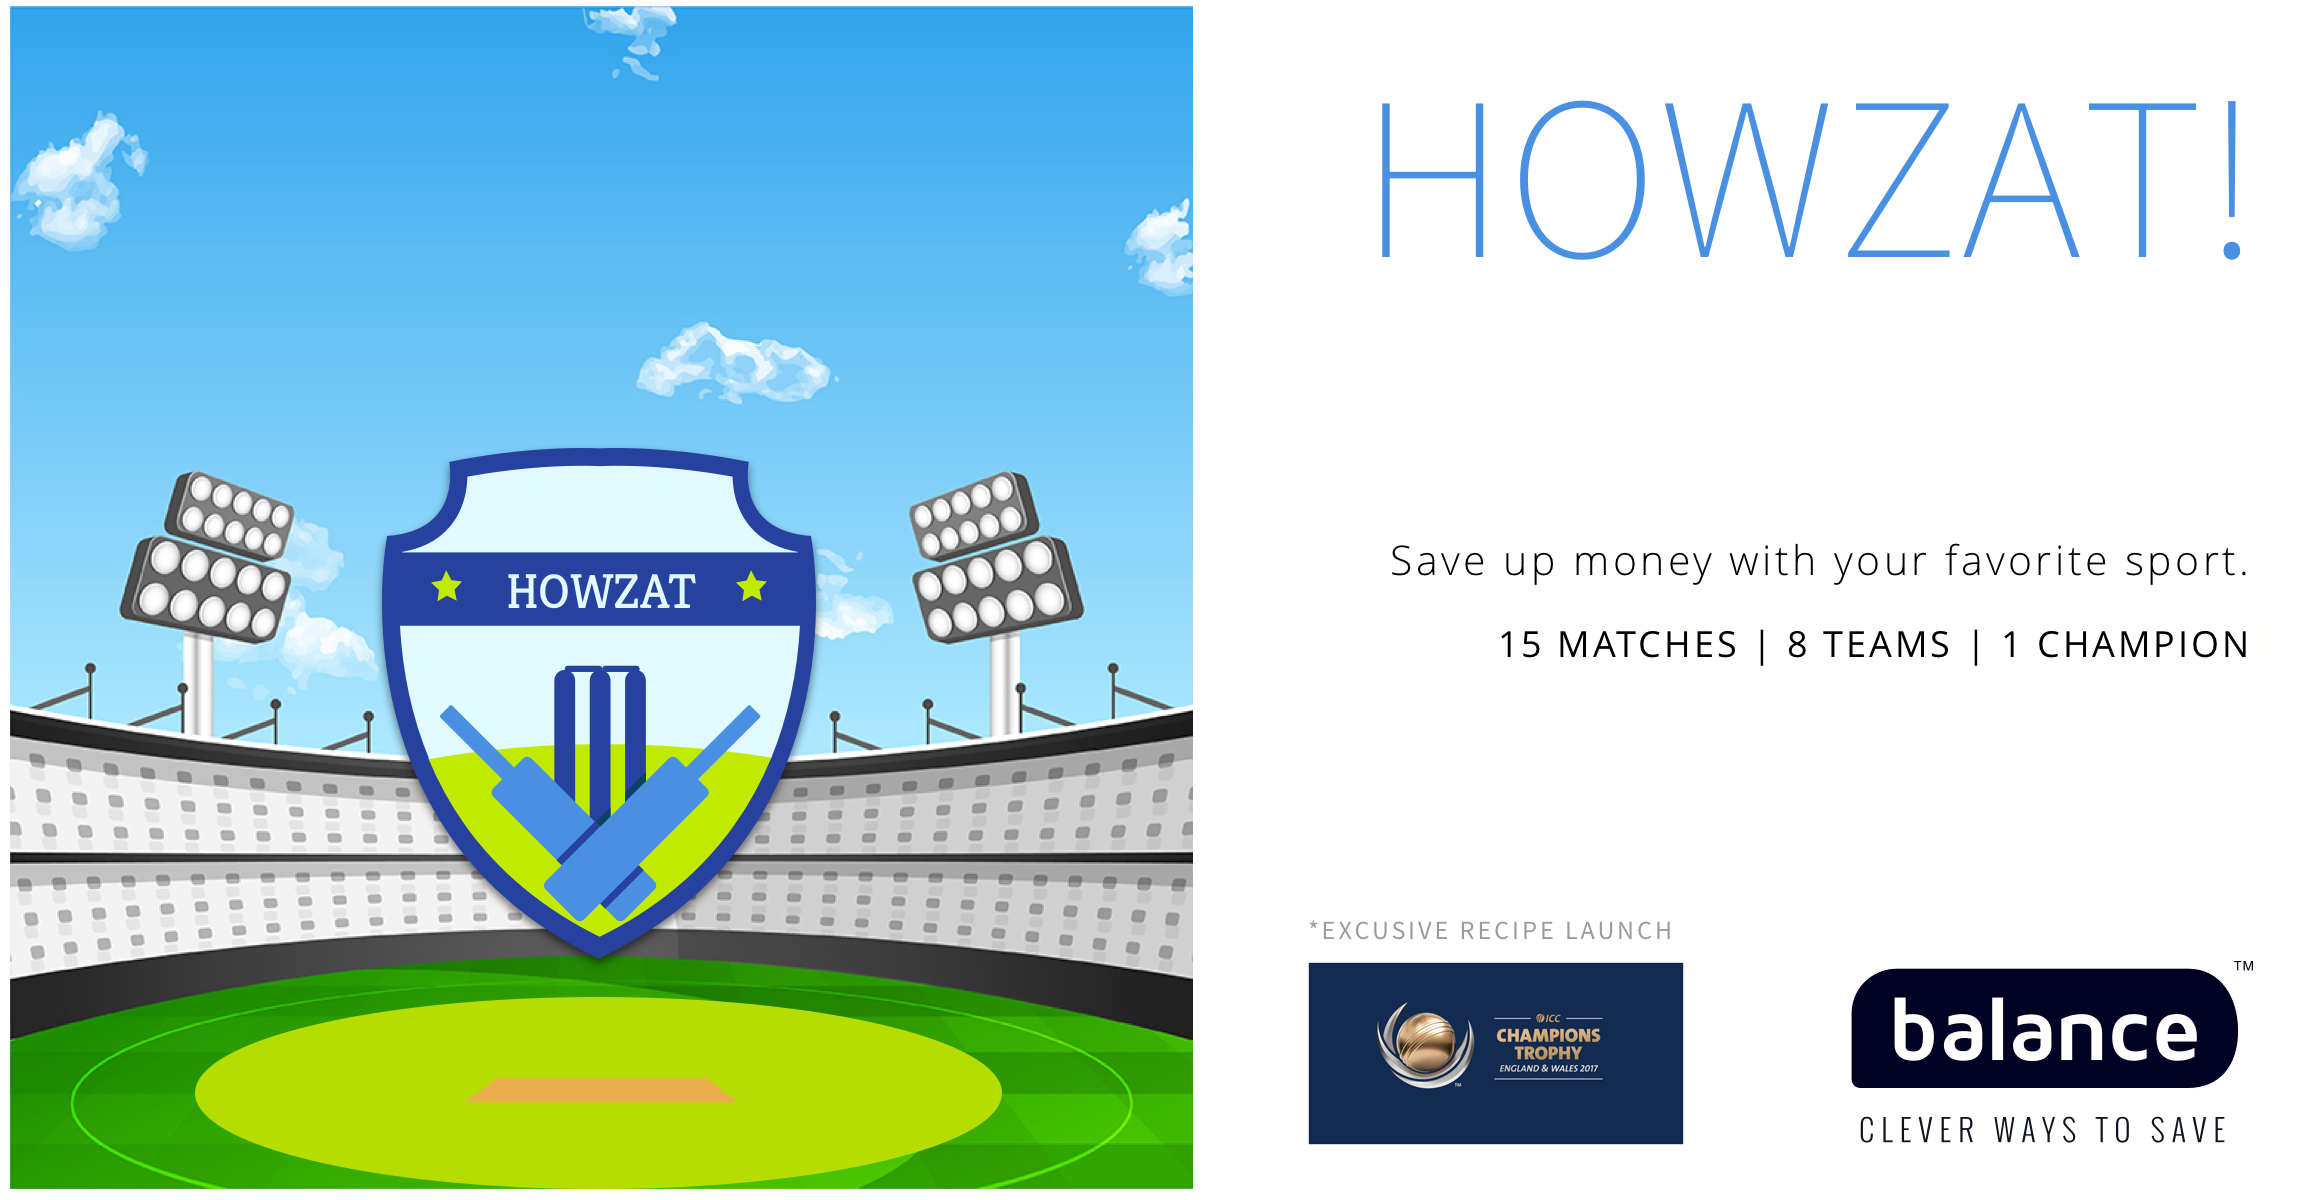 New recipe from Balance for Cricket fans: Save up money with Howzat! – Z-Connect by Zerodha Z